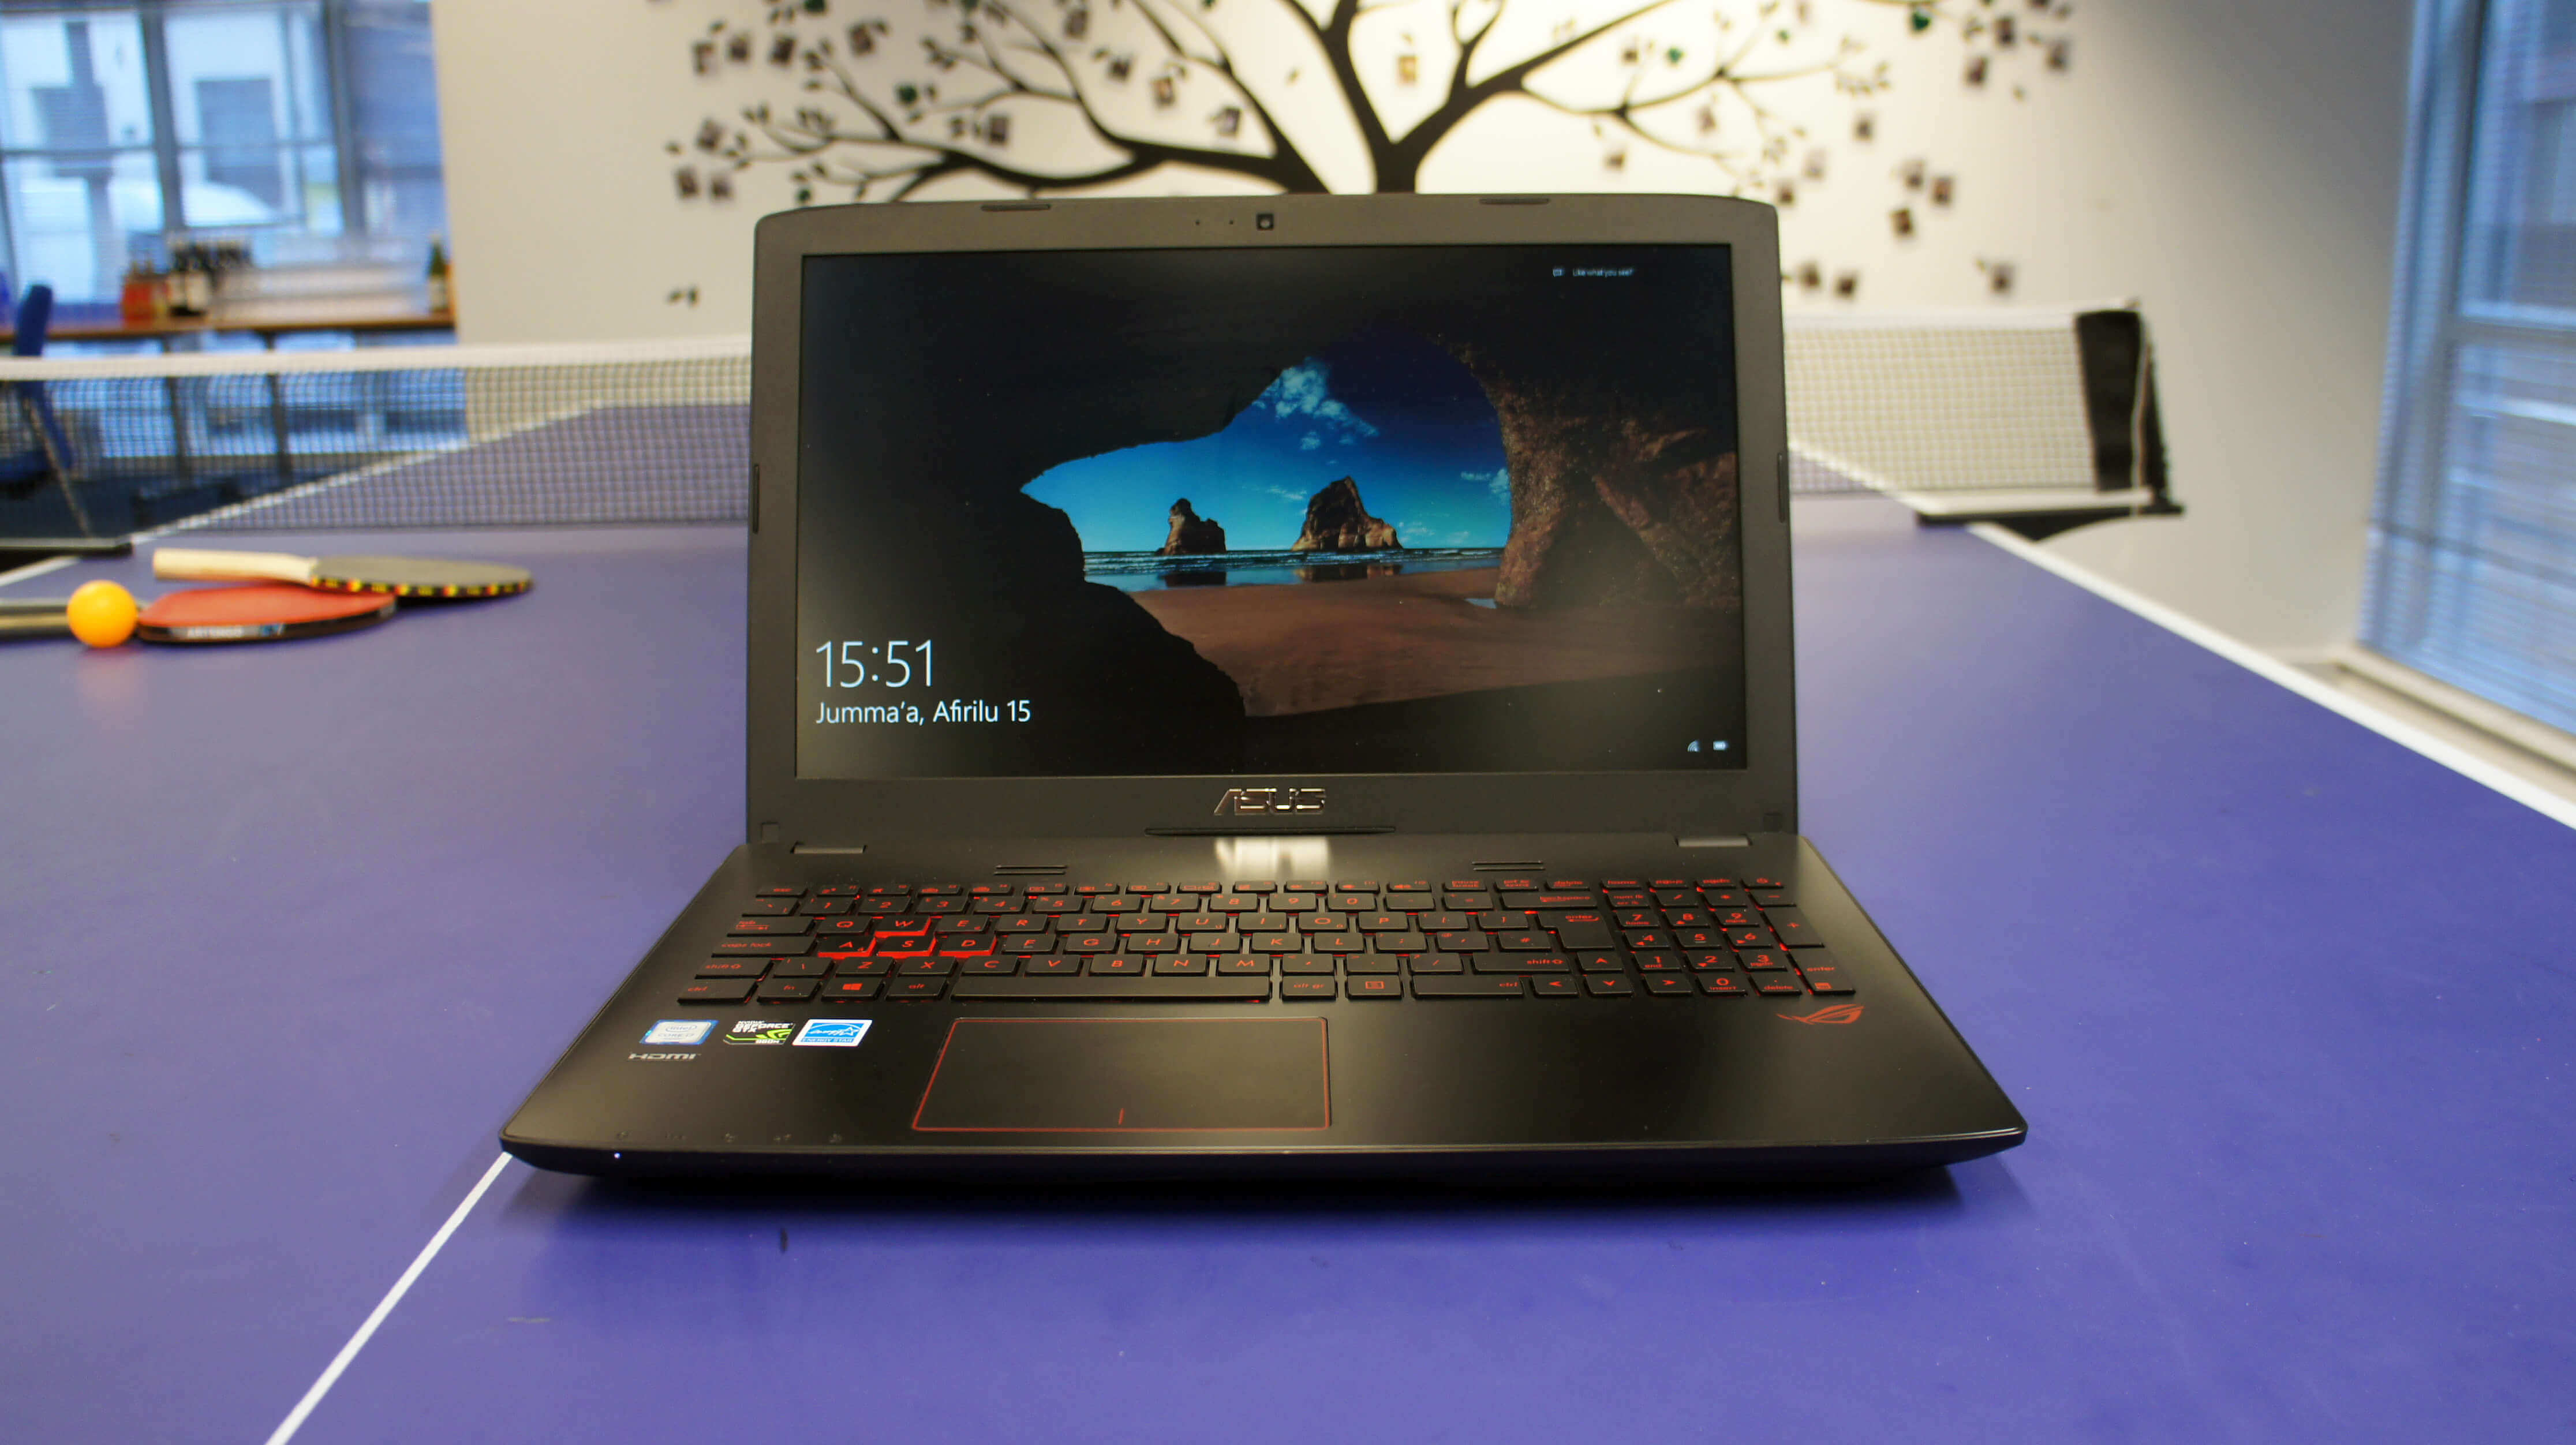 Best Gaming Laptop under 1000 dollars, Under £1000 GBP